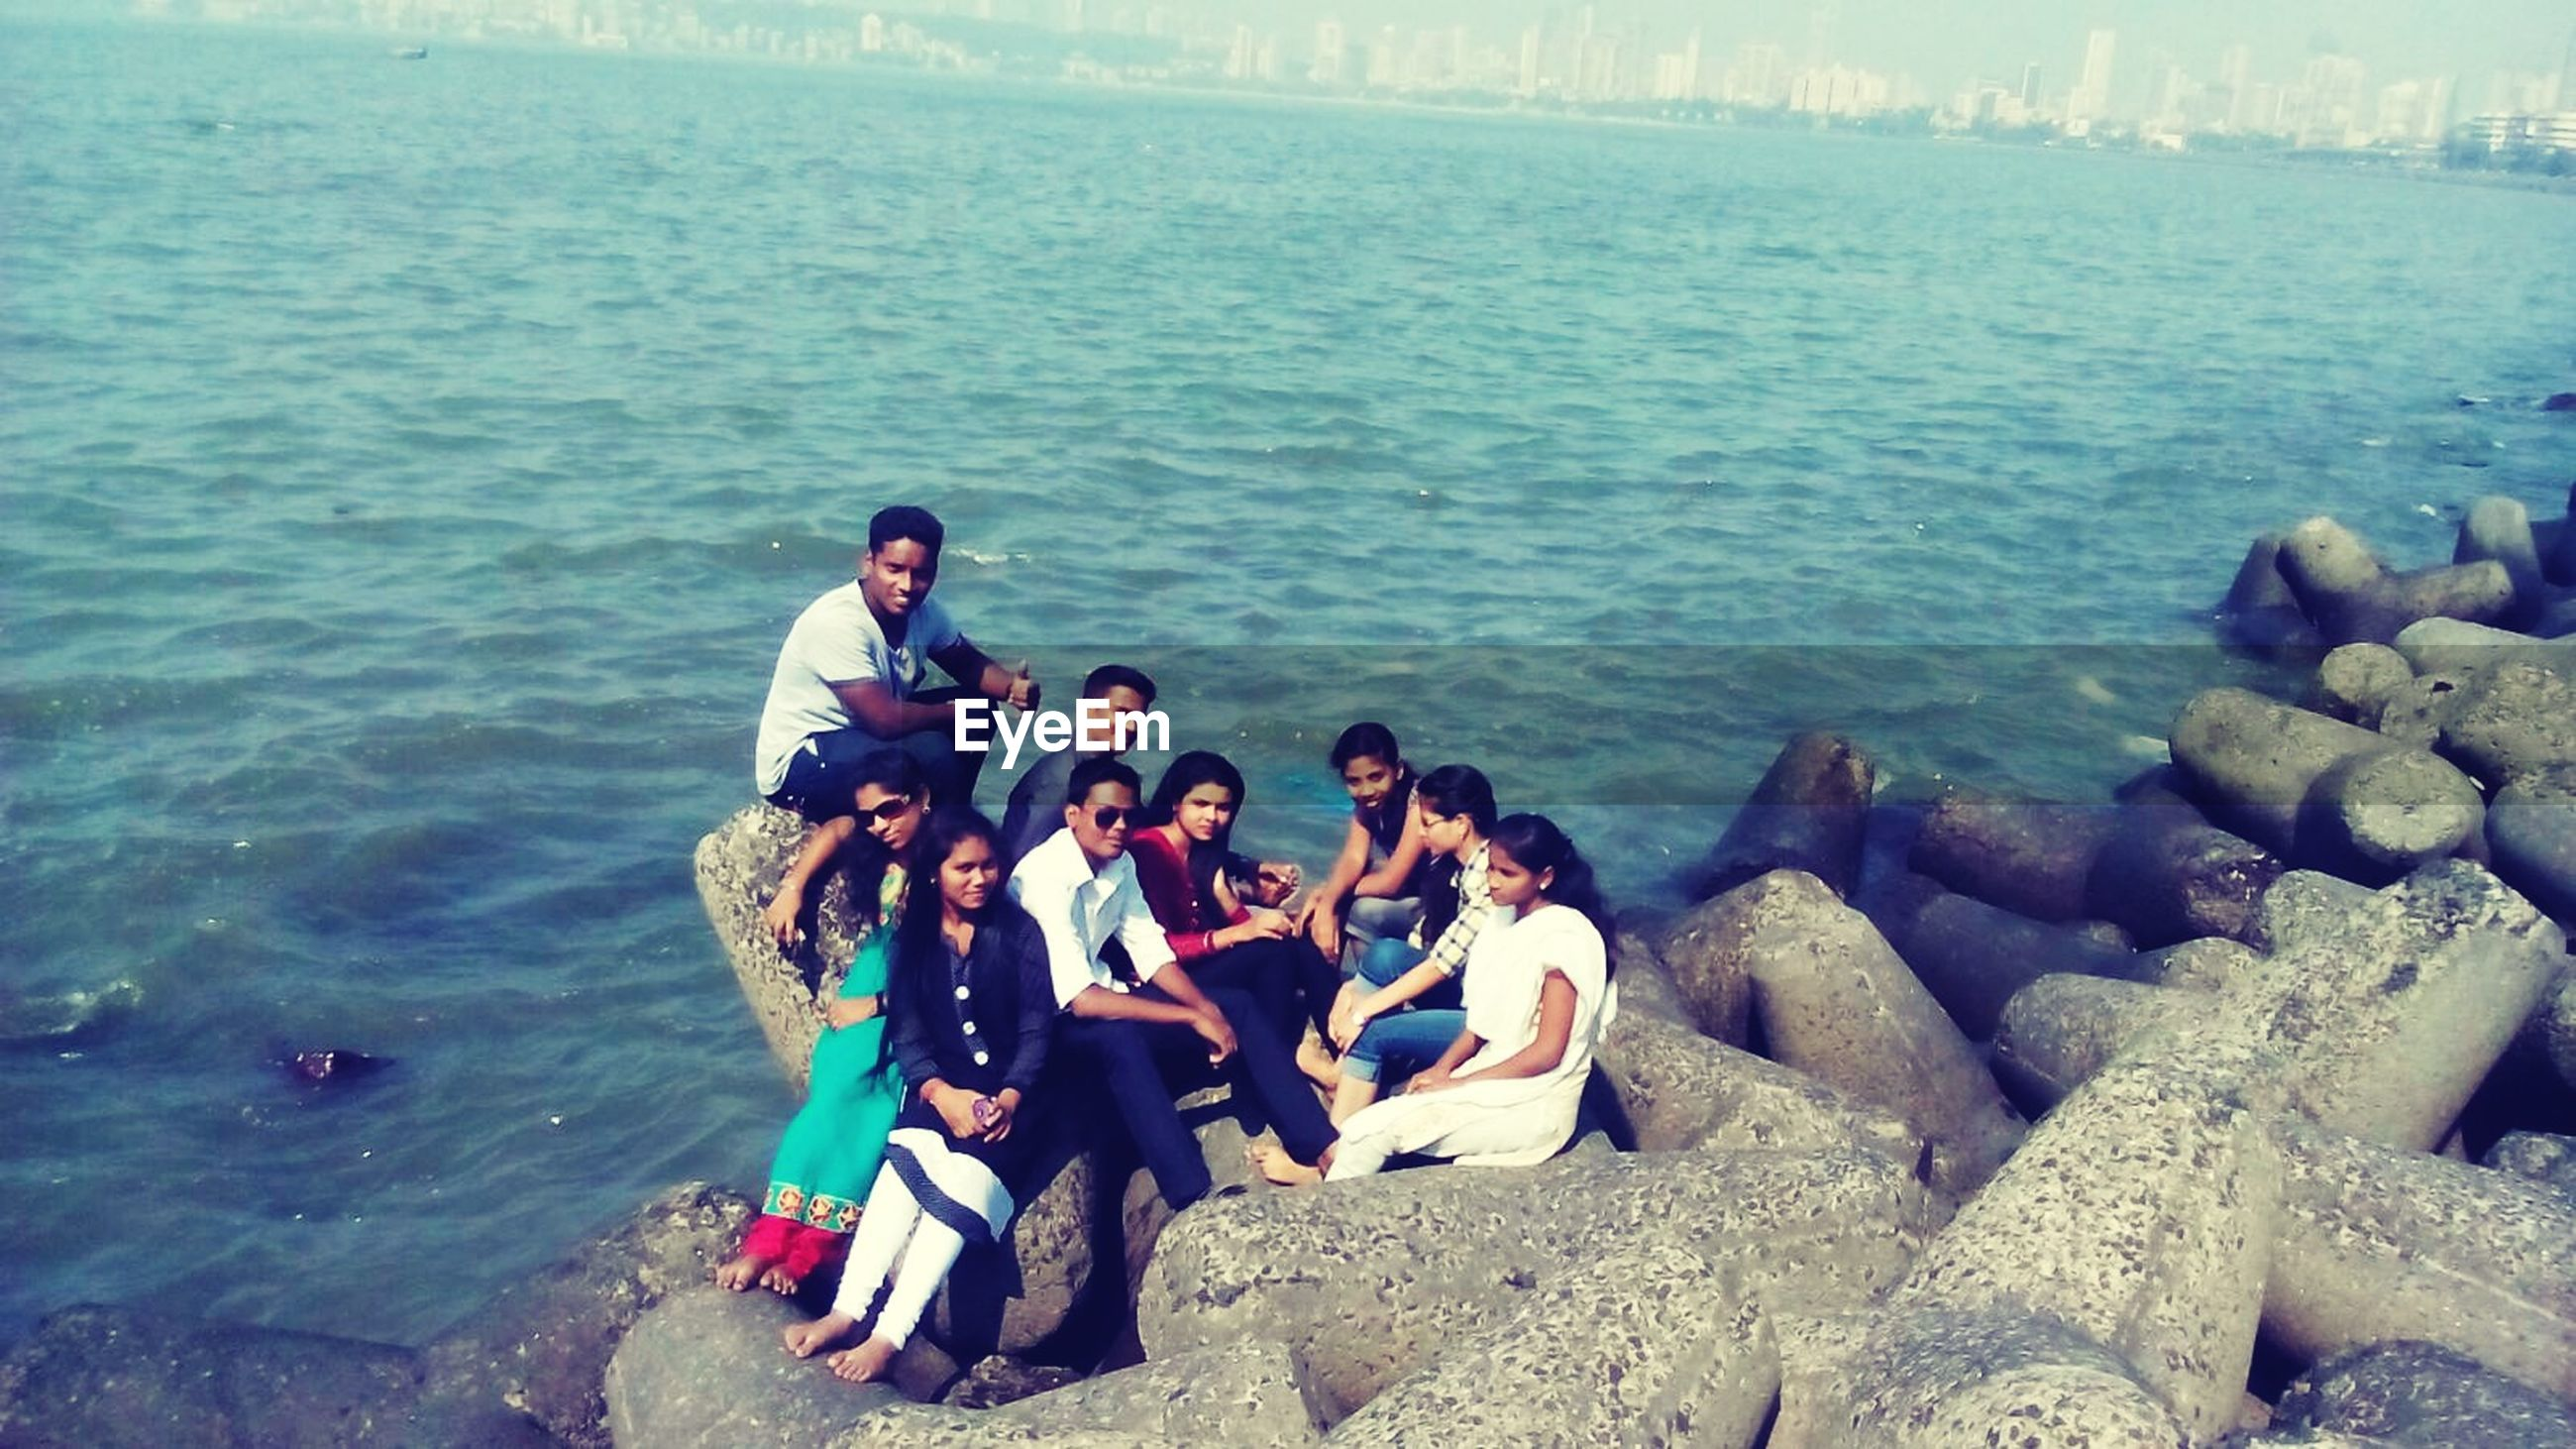 water, lifestyles, leisure activity, sea, vacations, men, togetherness, high angle view, rock - object, sitting, tourist, travel, nature, person, large group of people, casual clothing, transportation, tourism, weekend activities